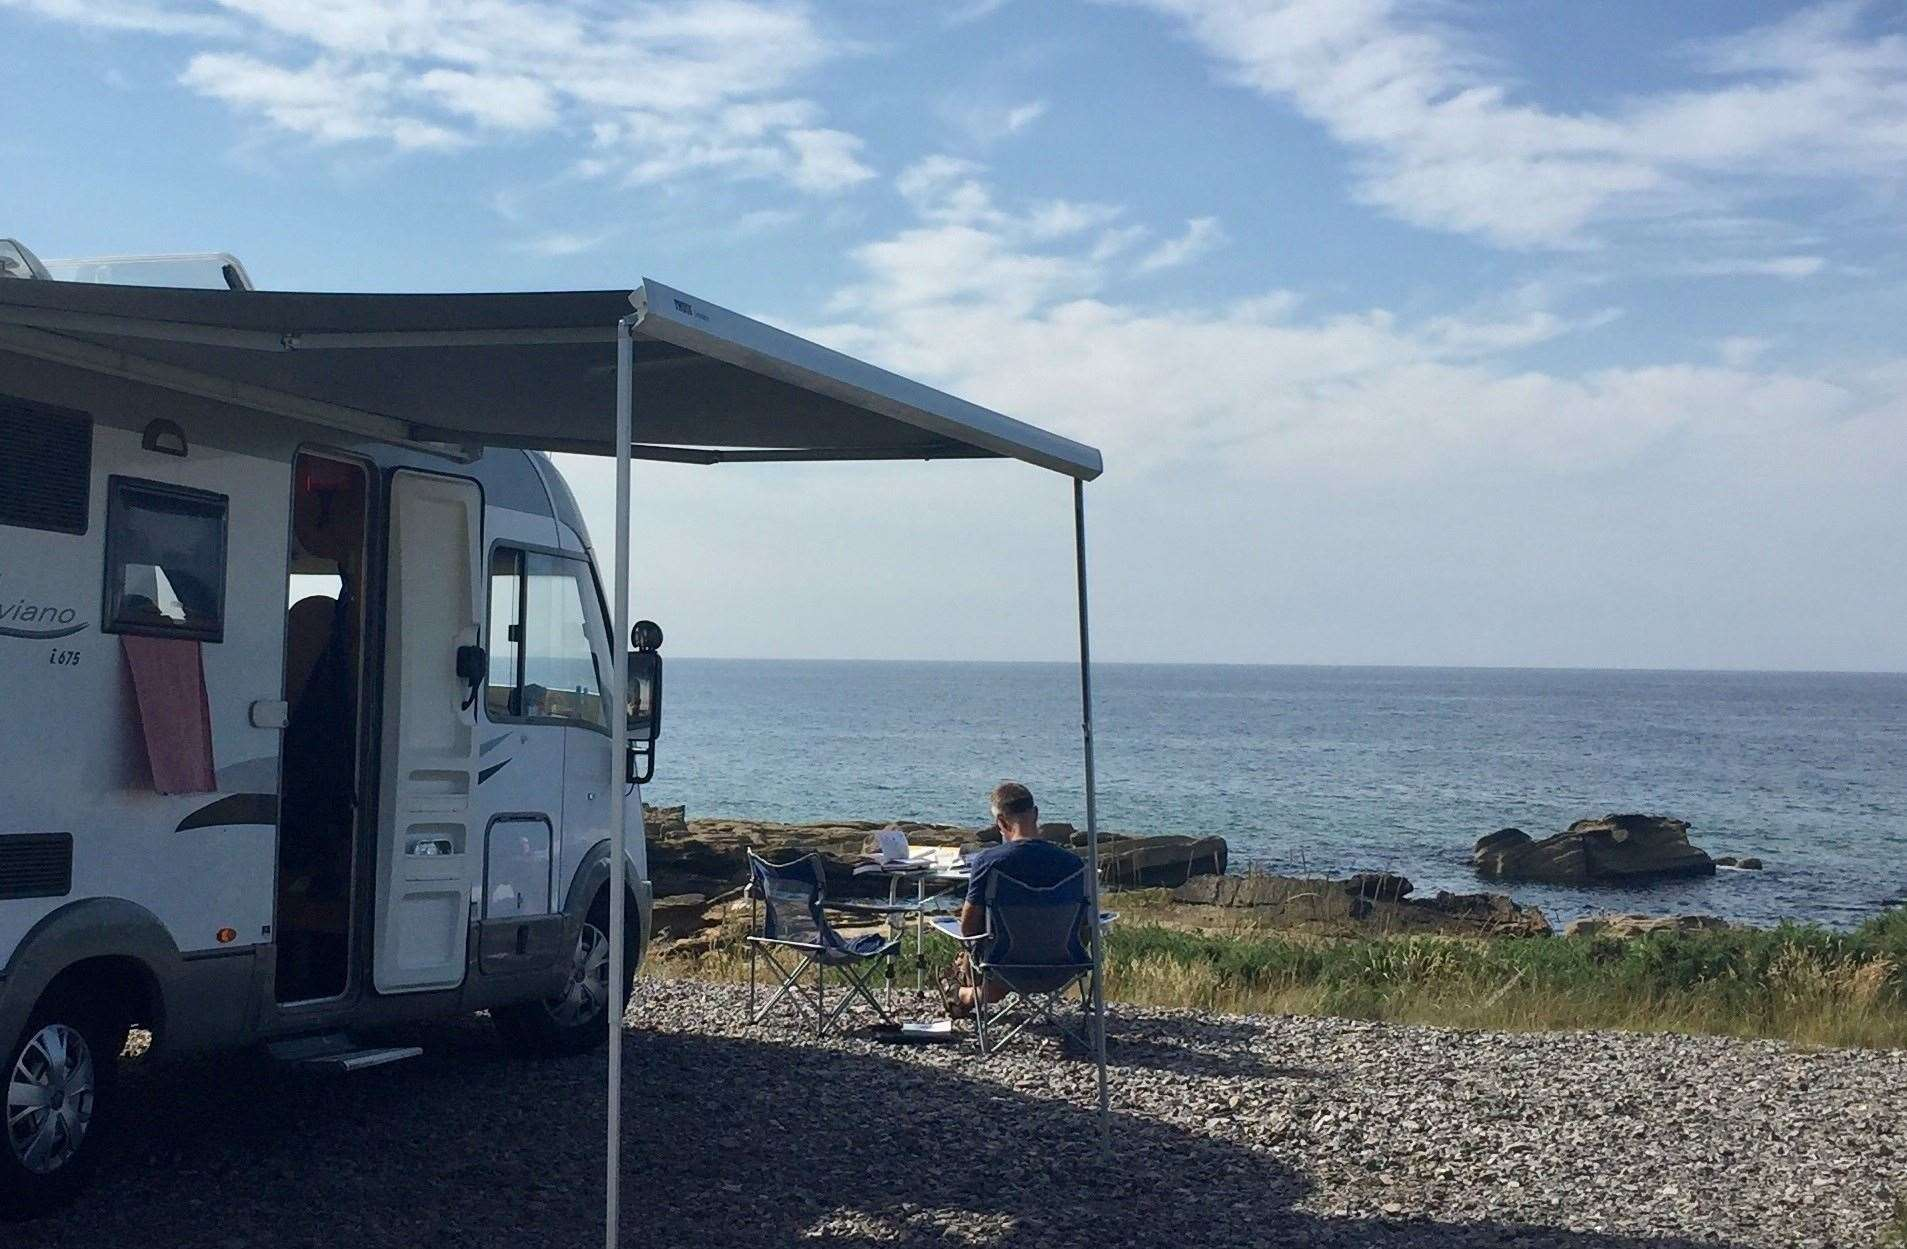 Nicky is looking forward to more motorhome holidays – when restrictions allow.